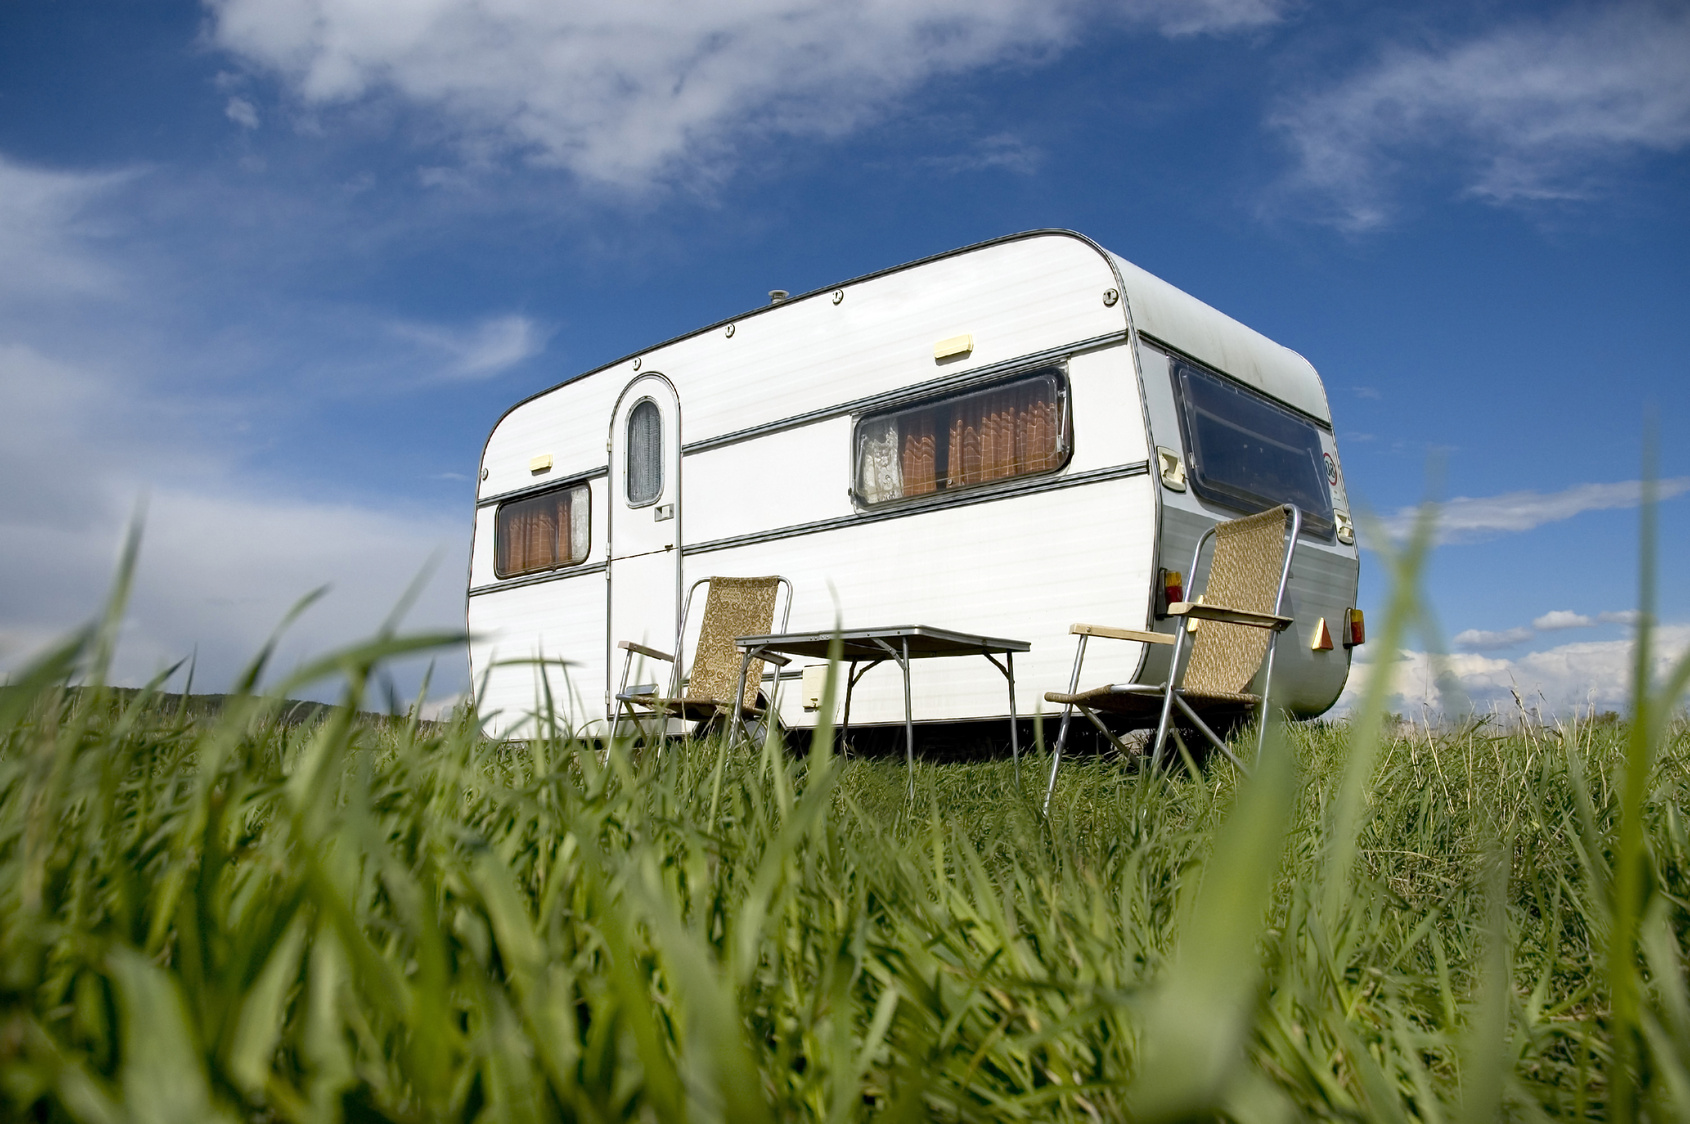 Caravan in a field with chairs